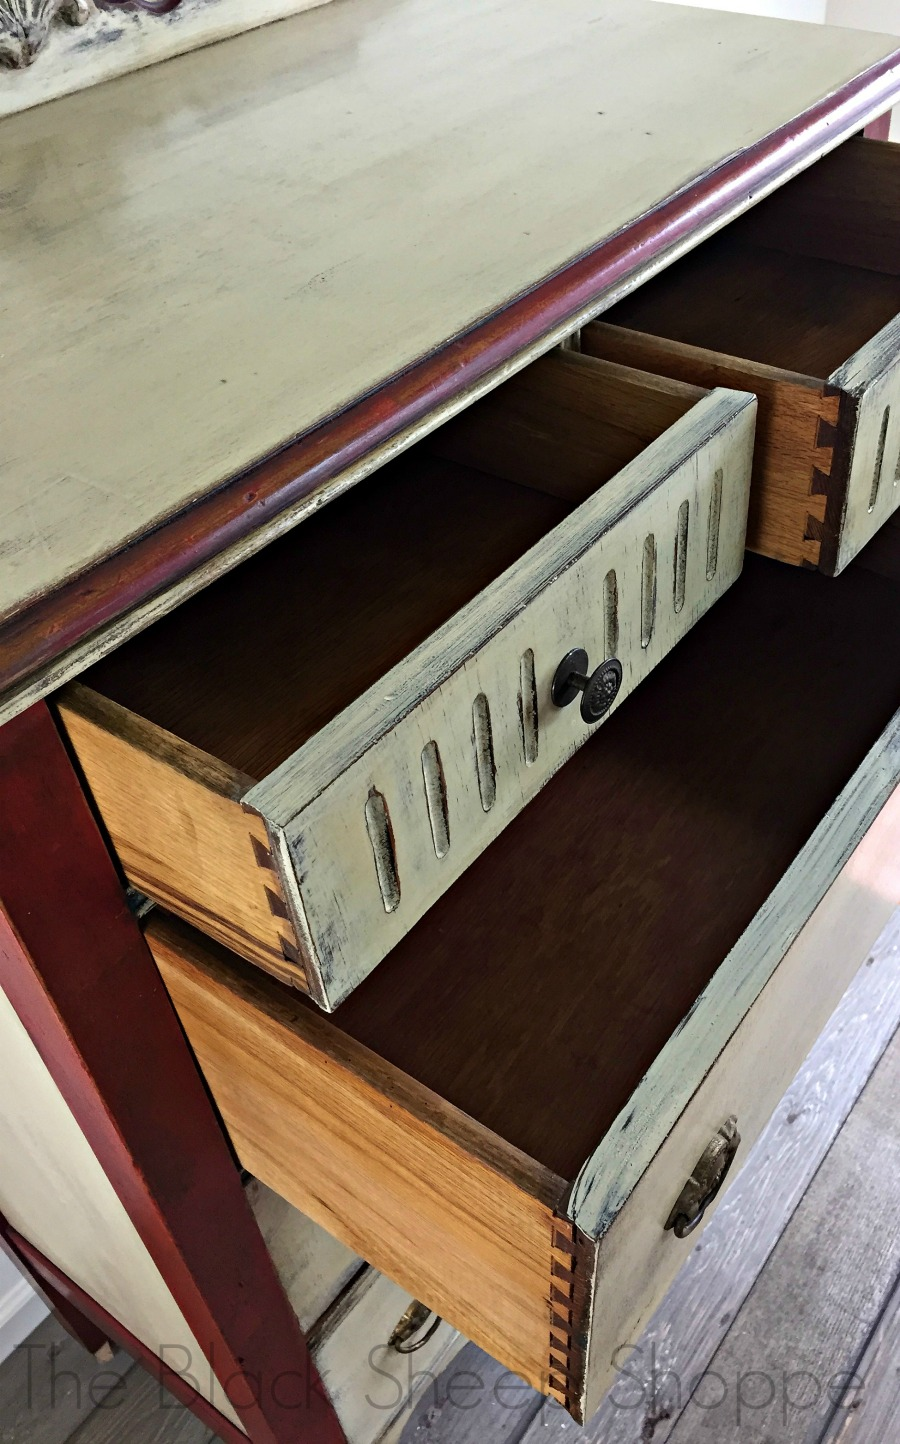 Drawer interiors of vintage dresser